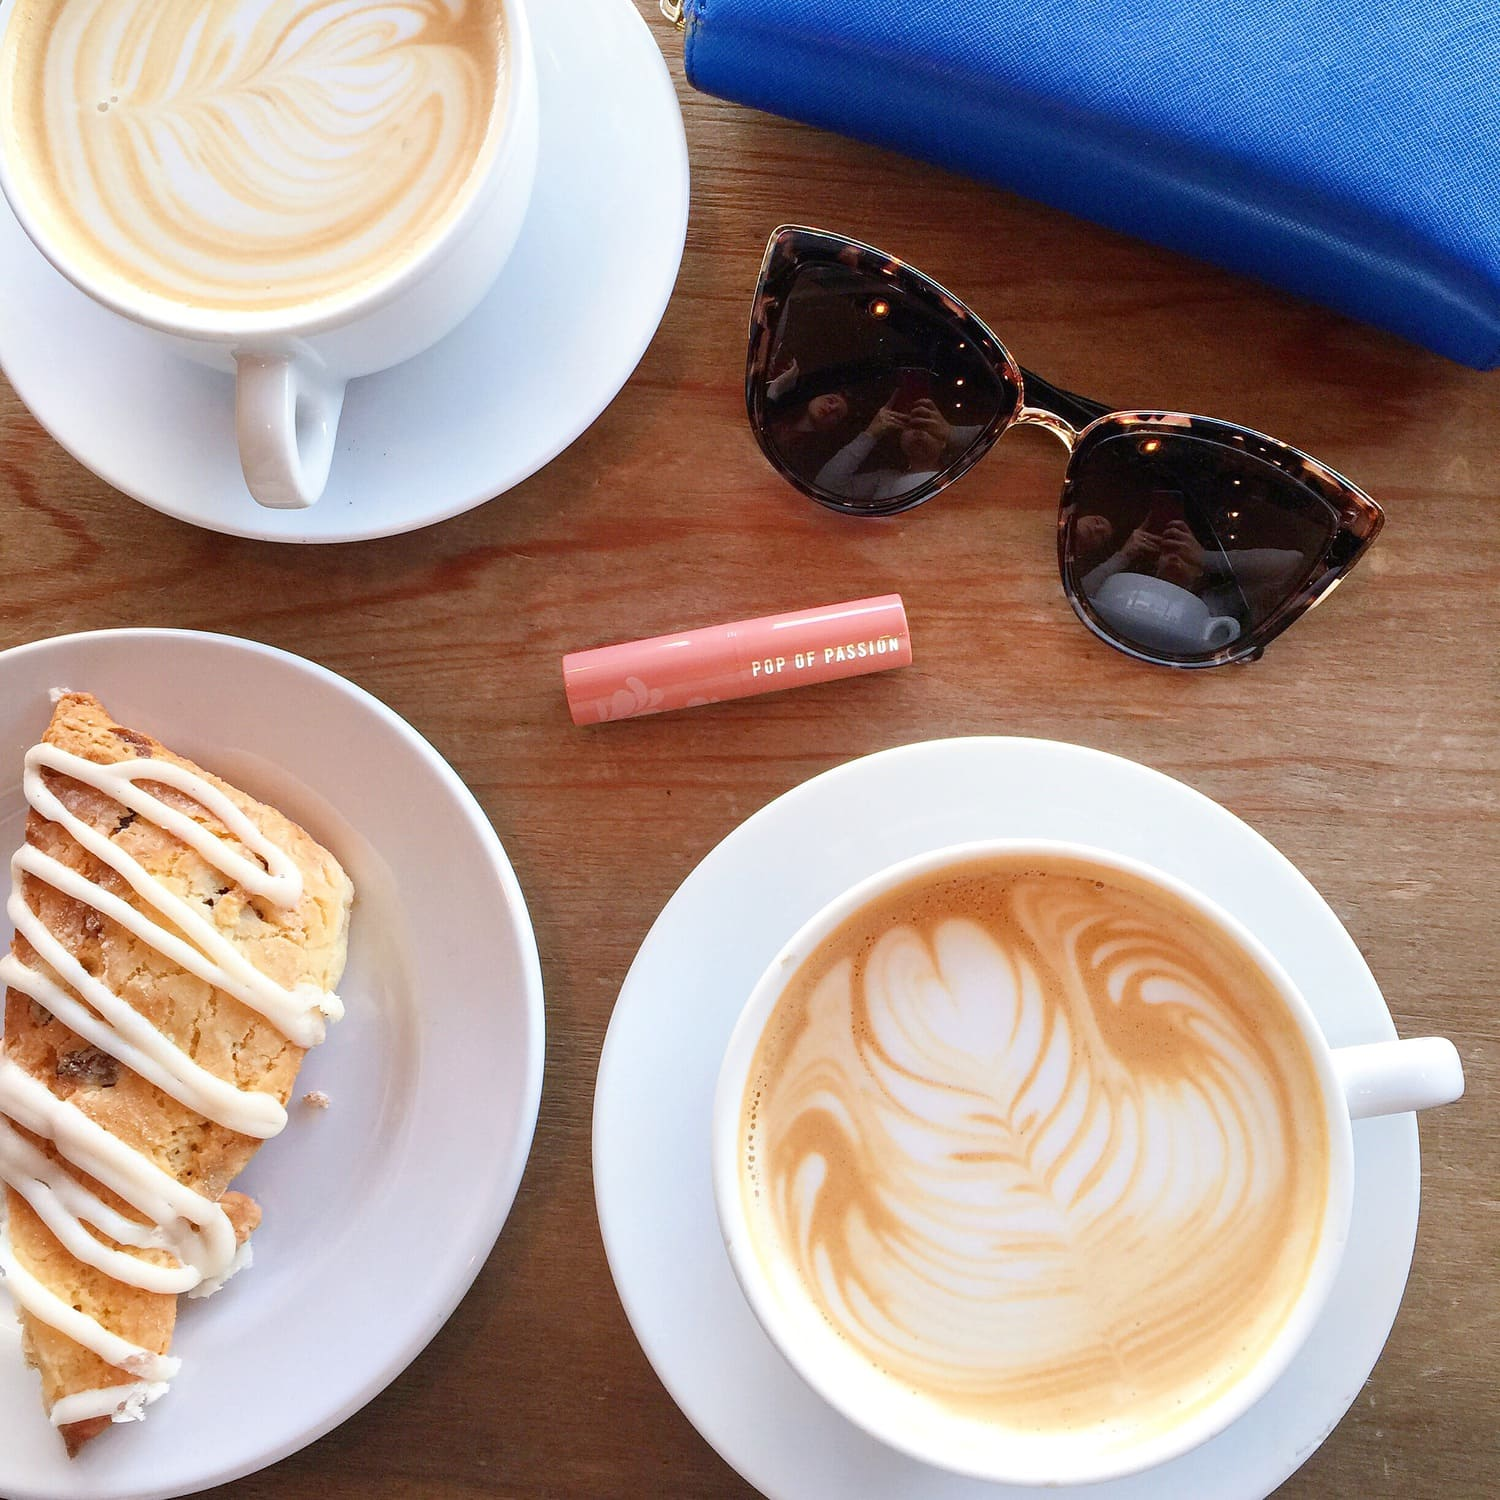 Pretty Latte Art, Frosted Scone, Pink Lip Balm, and Tortoise Shell Cat Eye Sunglasses at Buddy Brew Coffee in Tampa | Tampa Florida Travel Guide | Marry Me on A Megabus Giveaway | Affordable Travel Options | Florida Travel Blogger Ashley Brooke Nicholas |